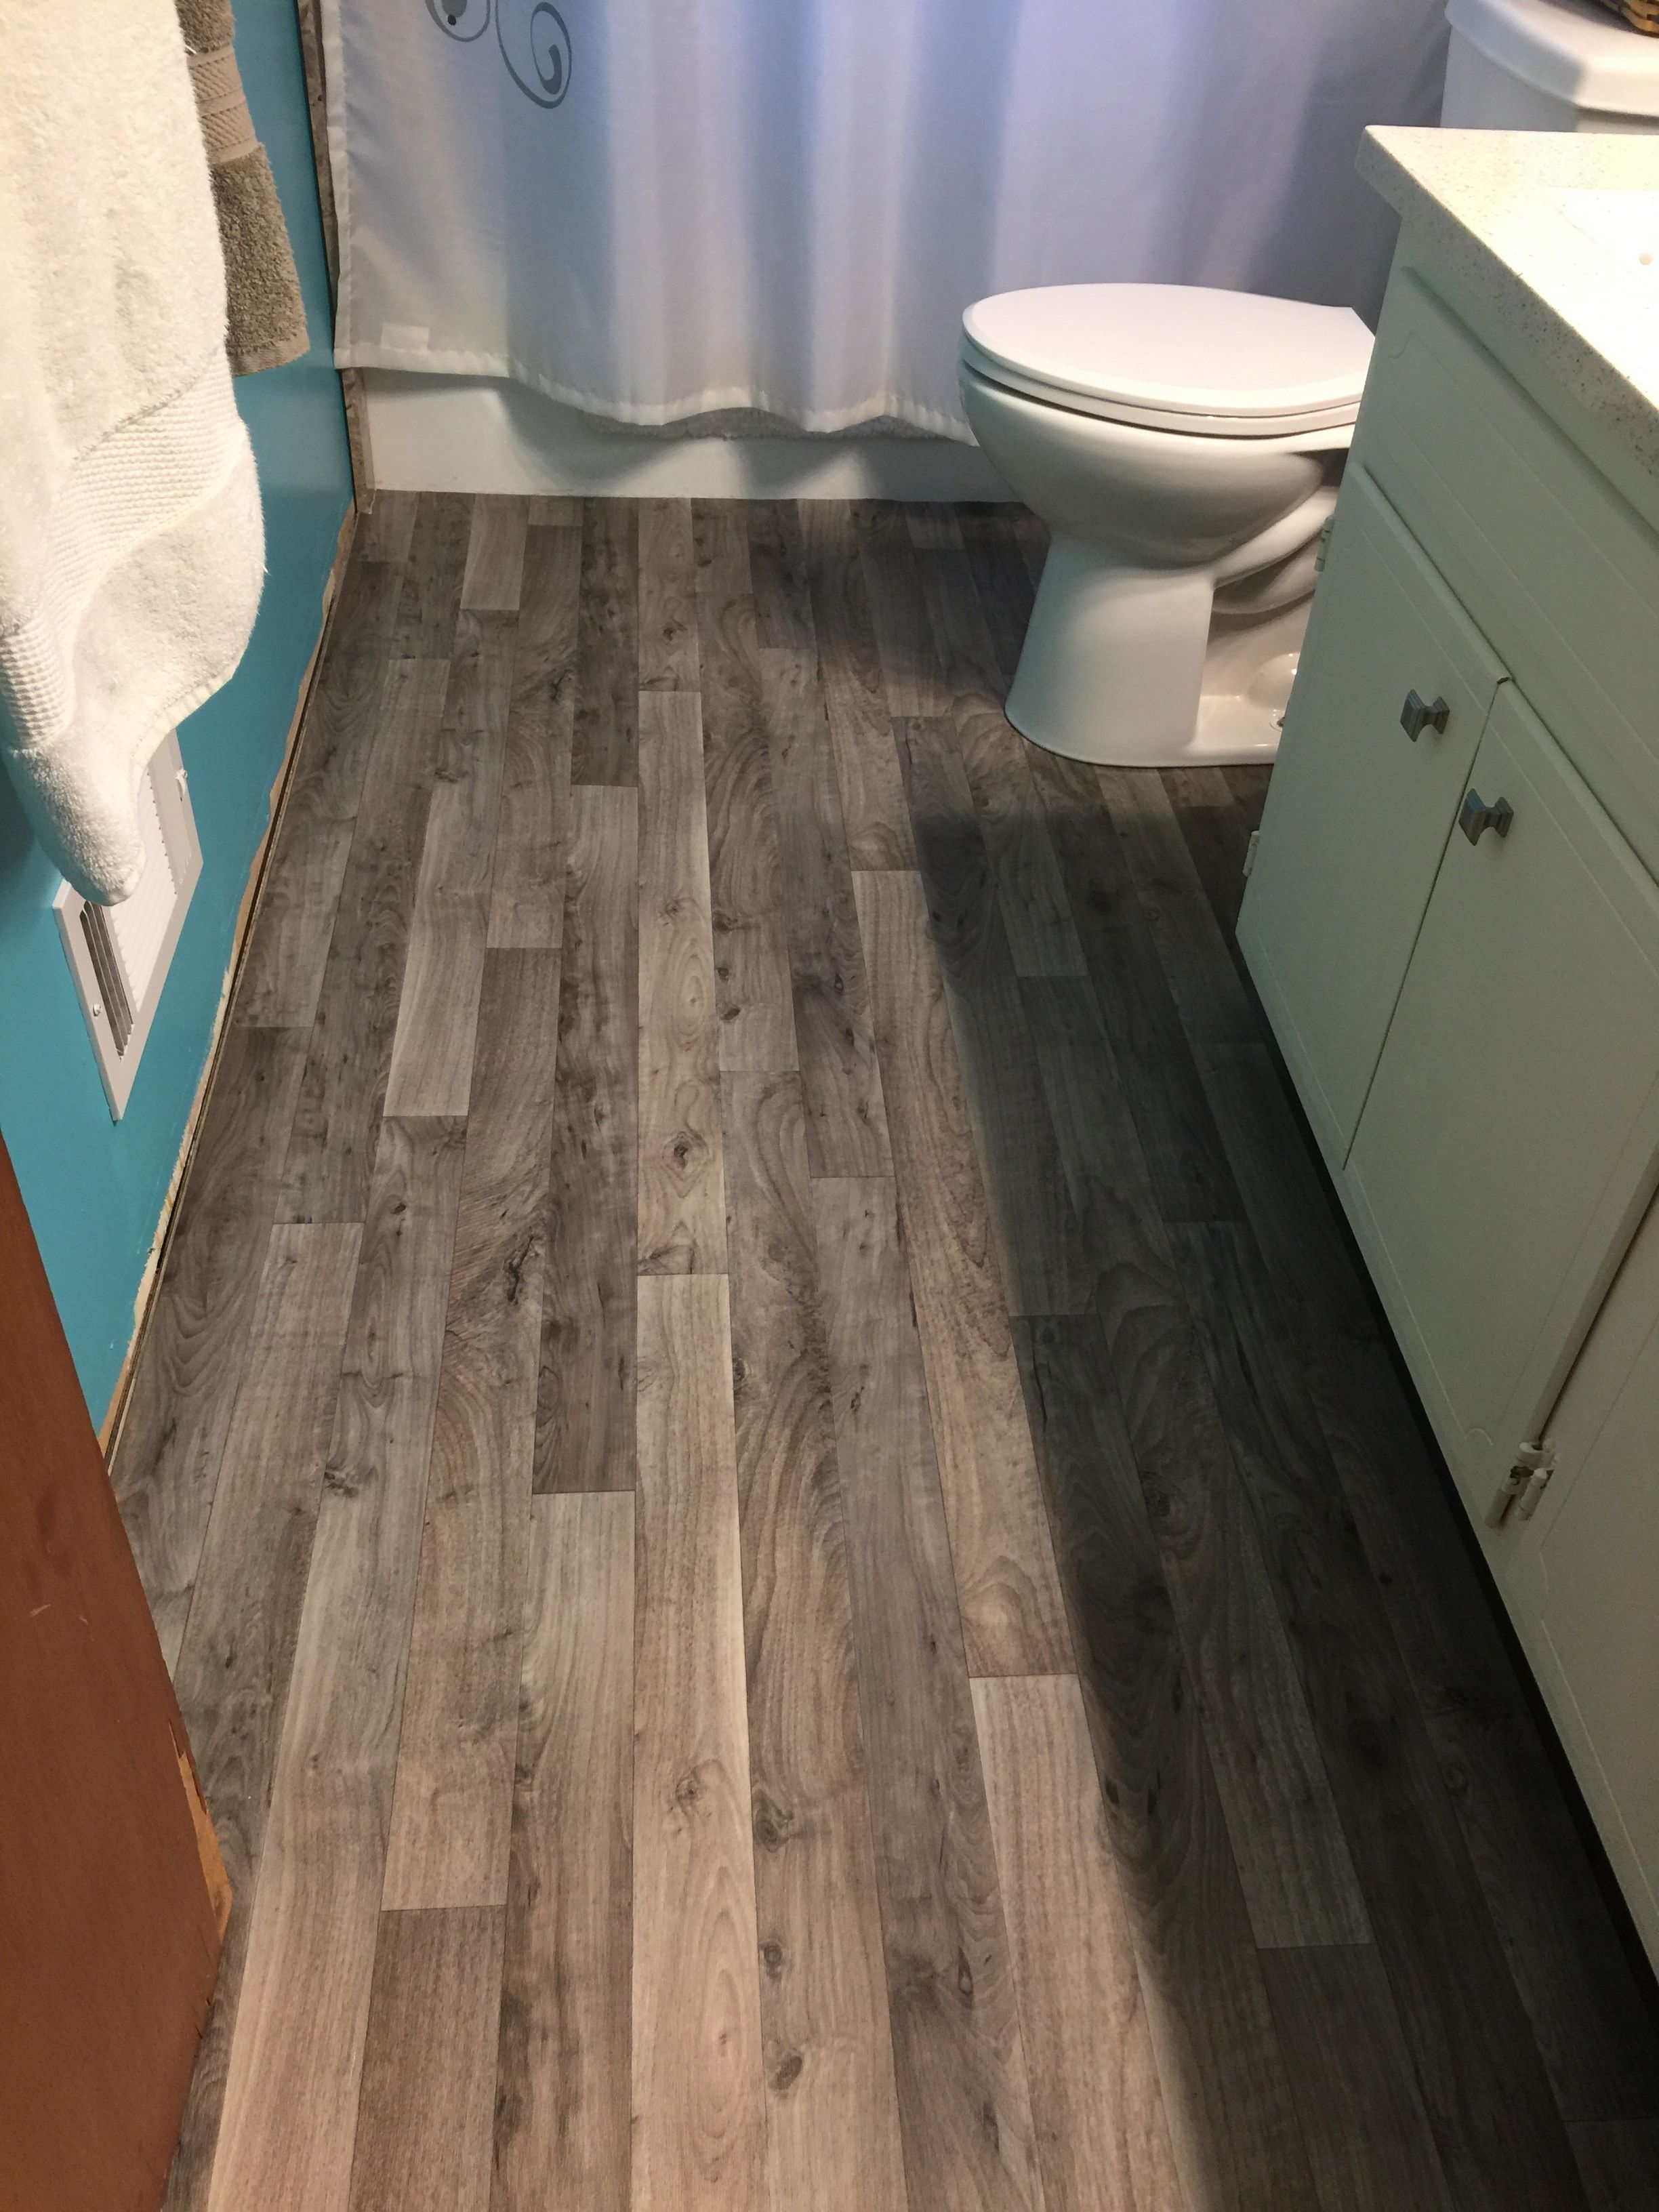 IVC Impact sheet vinyl flooring Midland Timber, Menards I